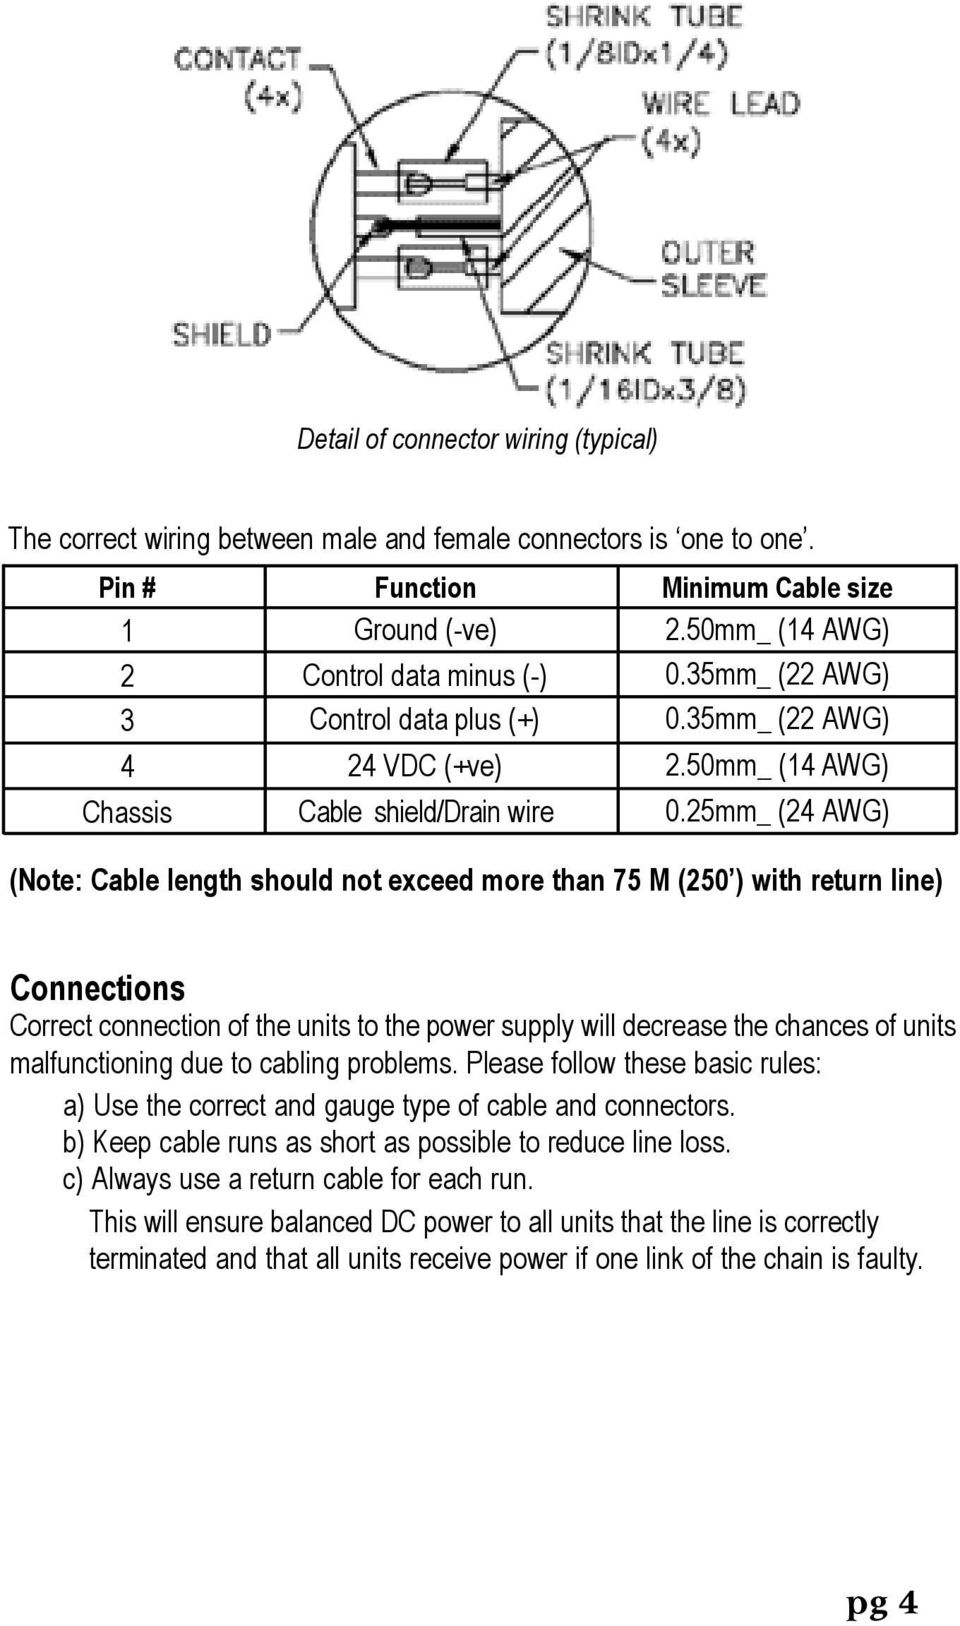 Exelent 4 awg wire size photos wiring diagram ideas blogitia attractive awg wire diameter with insulation image everything you keyboard keysfo Image collections